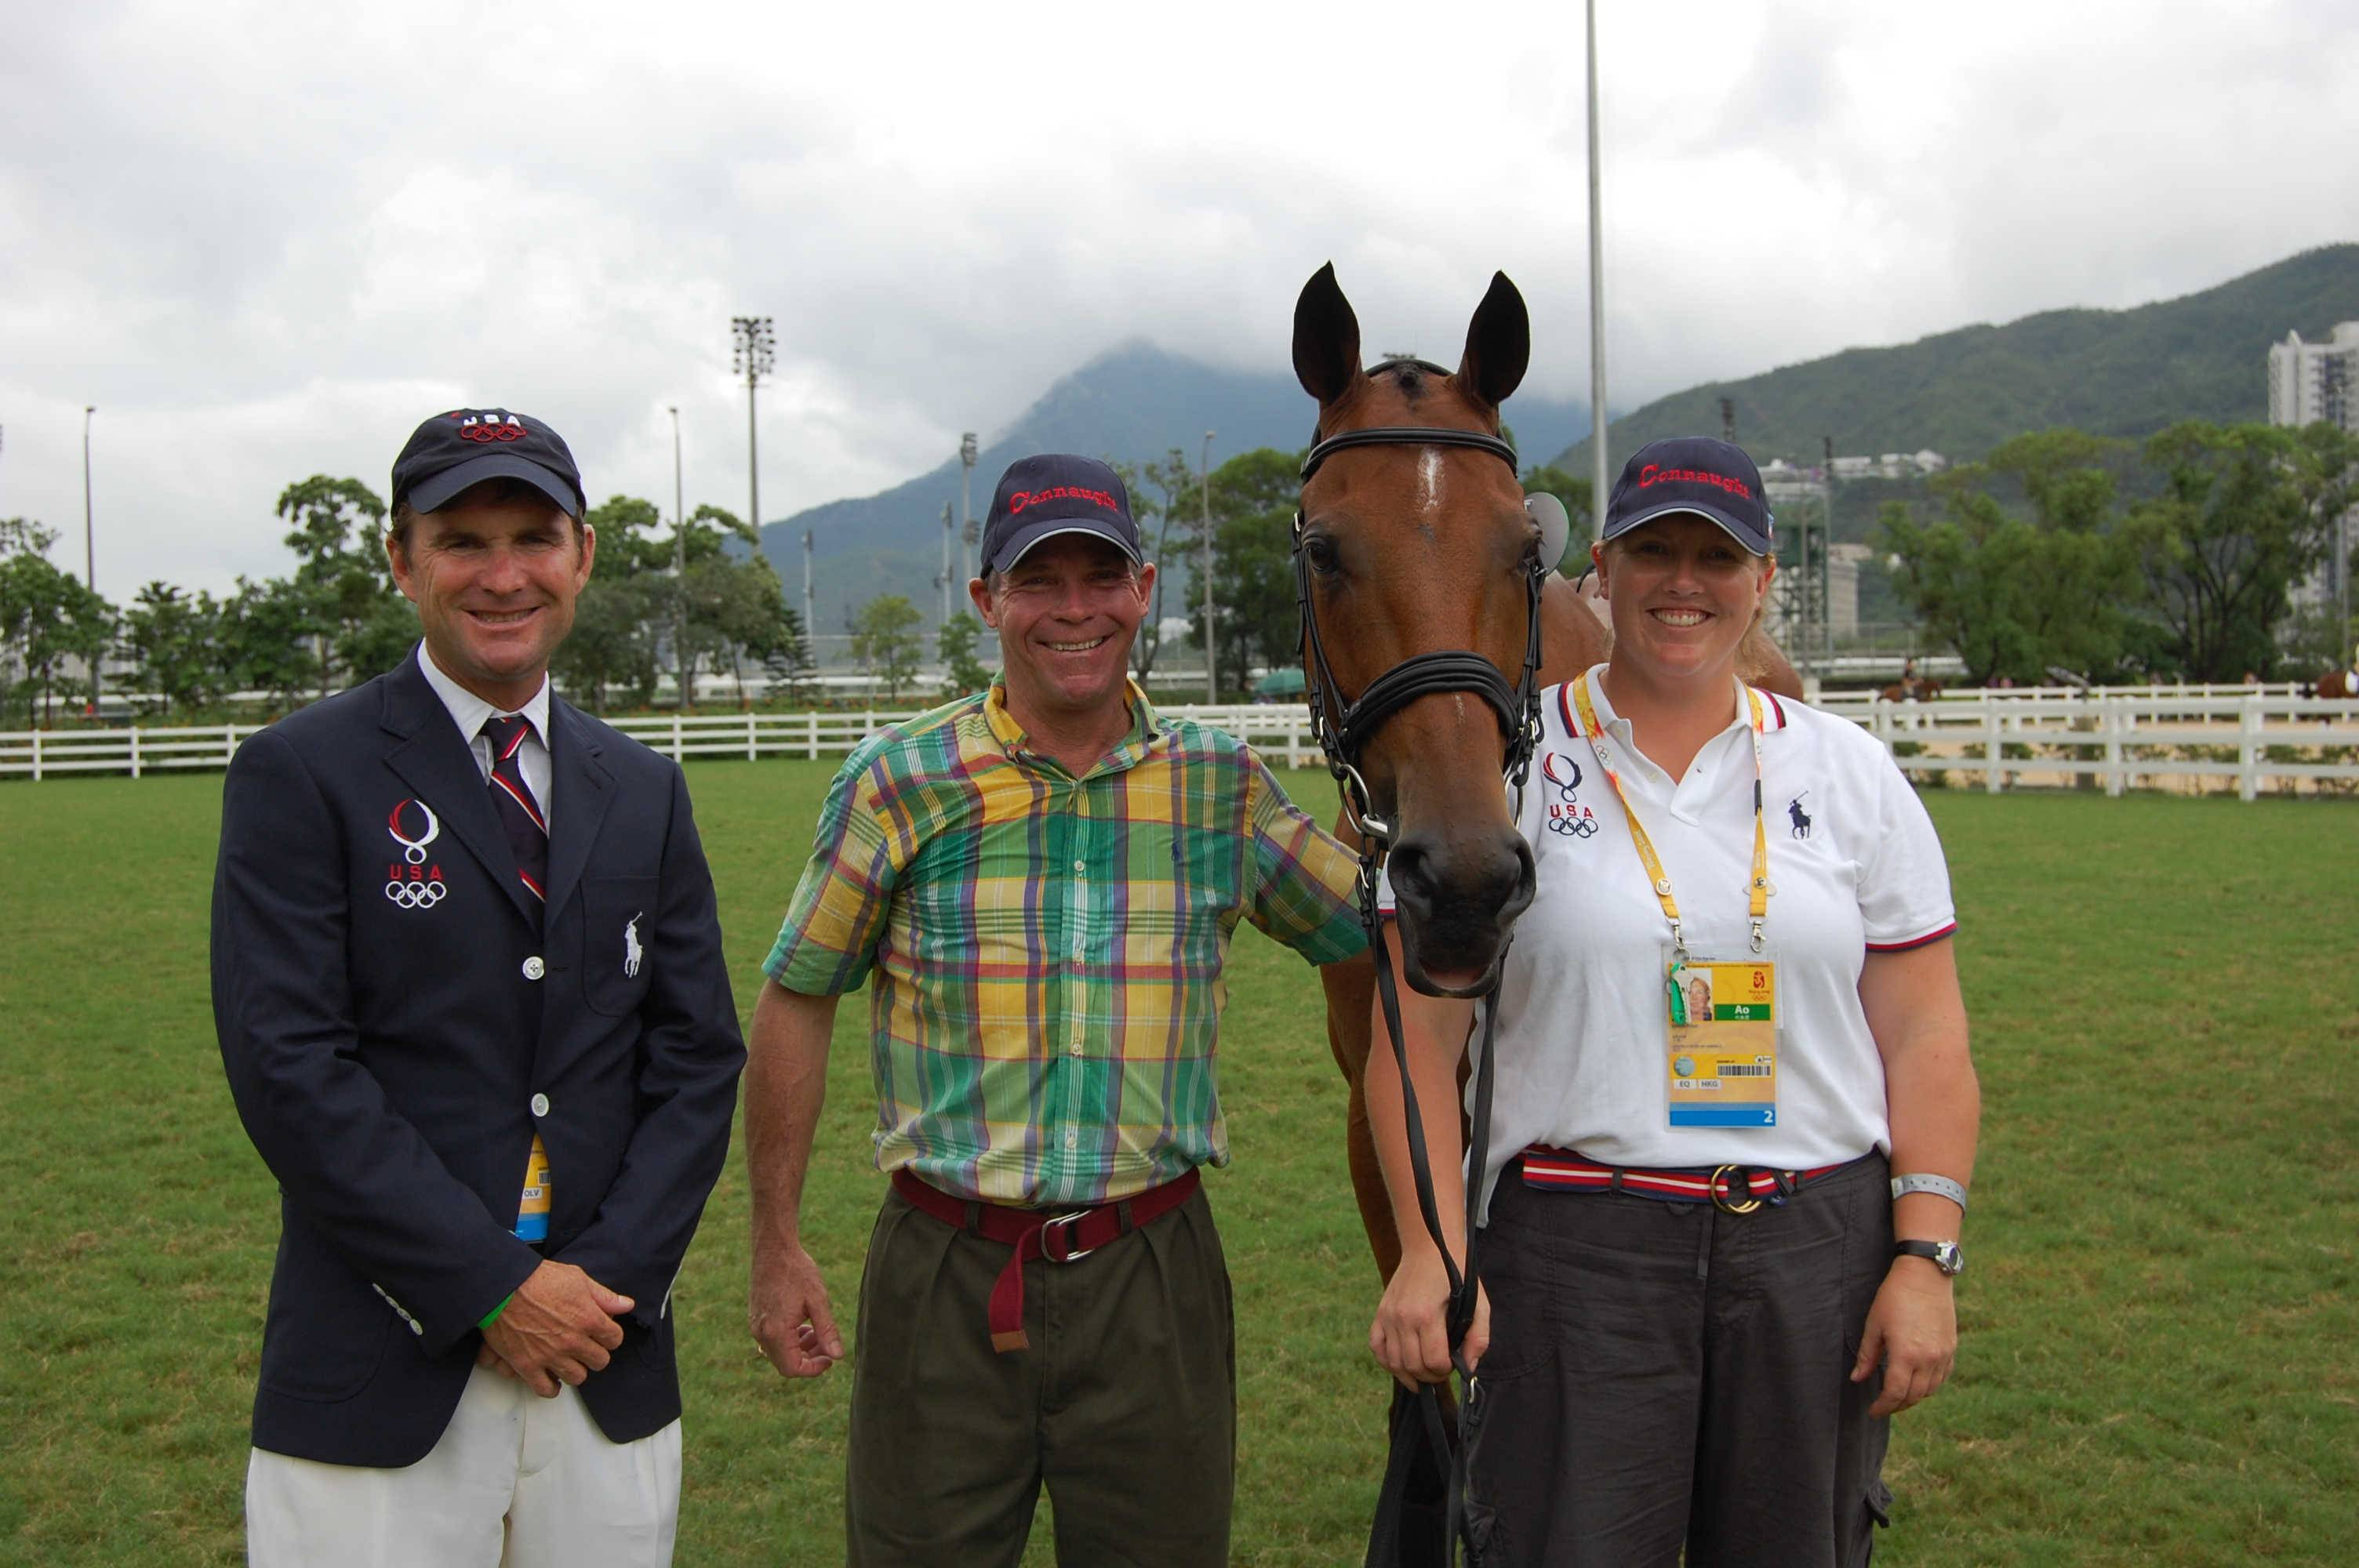 Bruce Duchossois, center, at the 2008 Olympic Games.